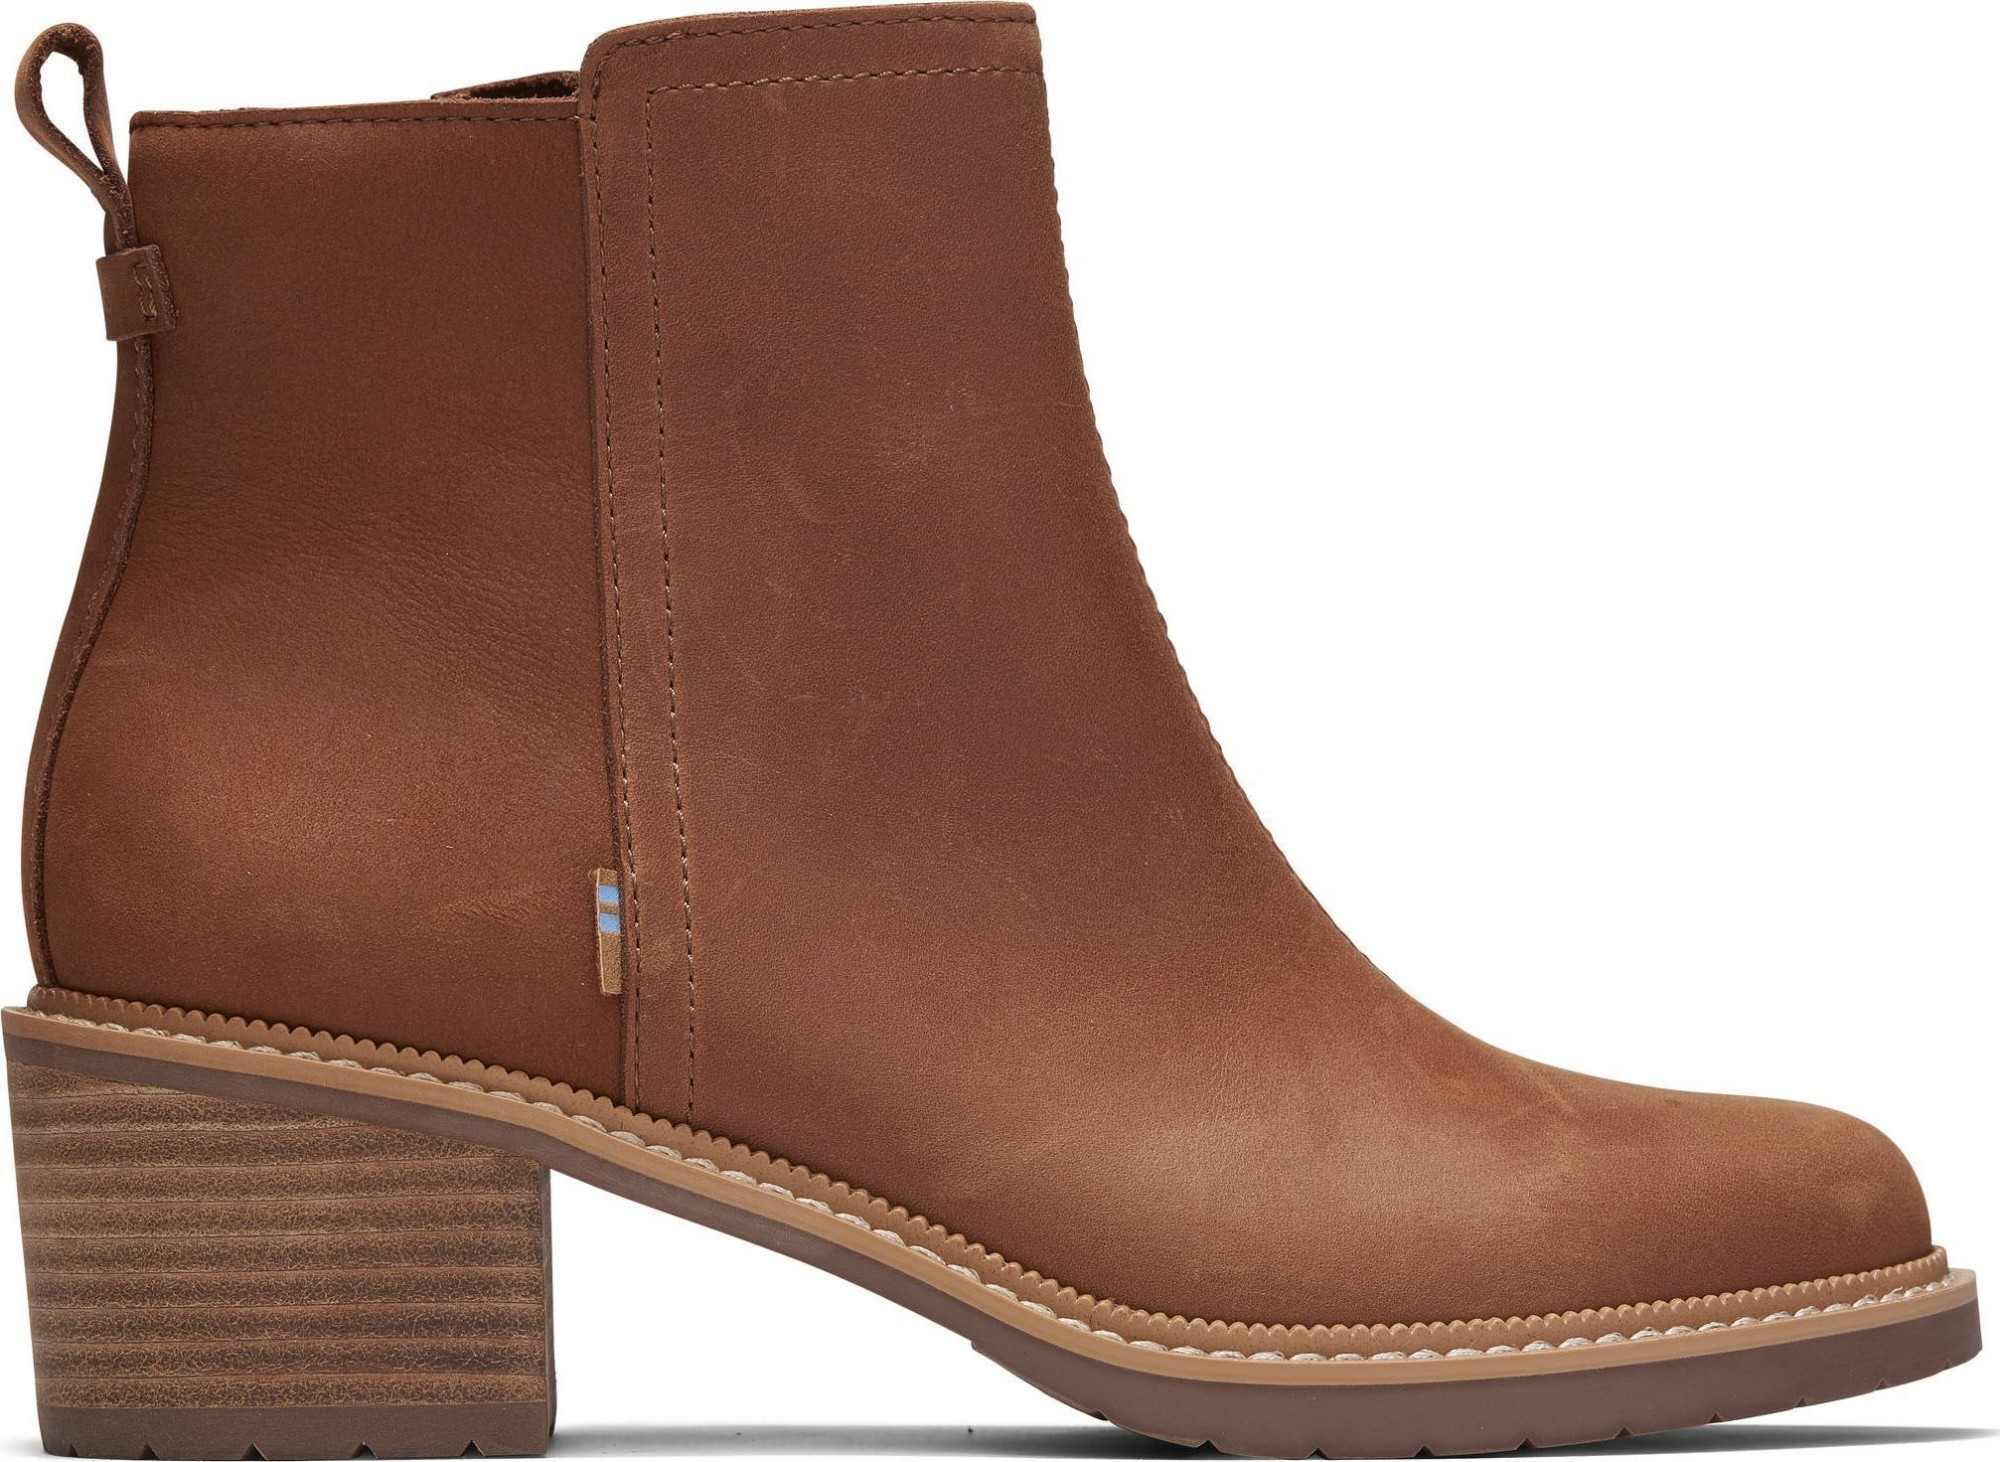 TOMS Smooth Waxy Leather Women's Marina Bootie Tan 37